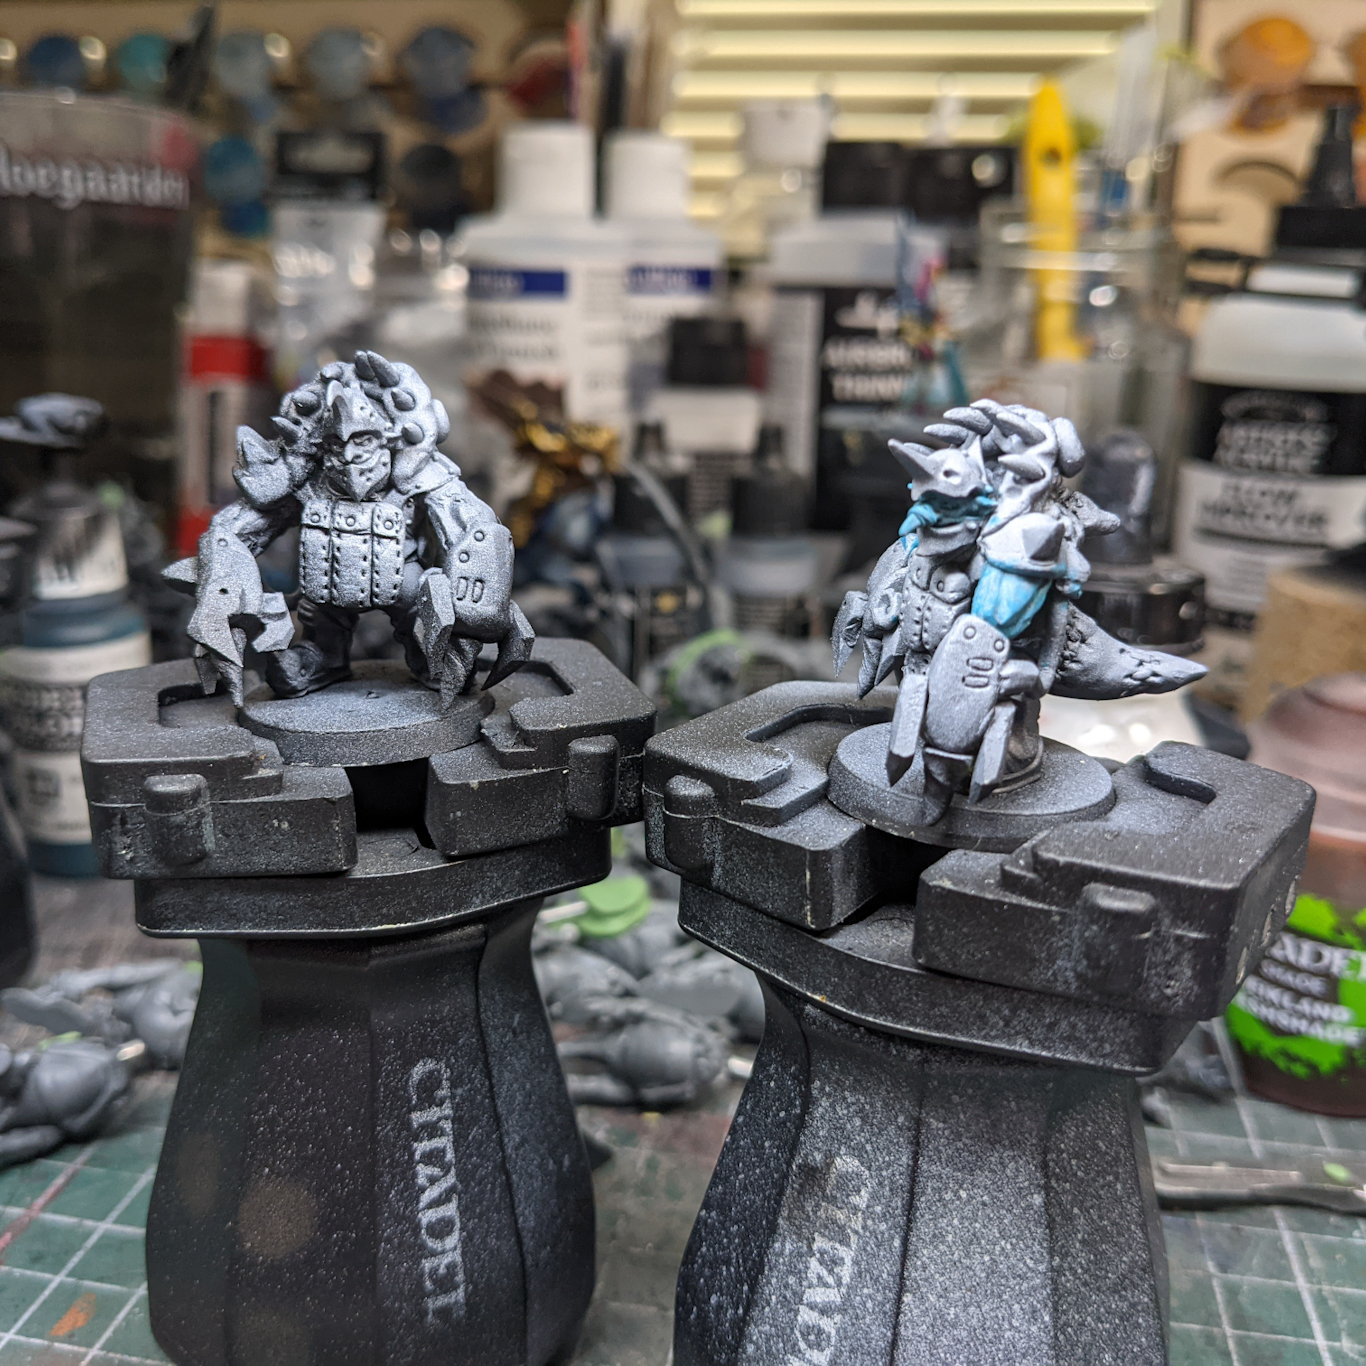 Two-partly painted Goblin models, wearing heavy armour and equipped with huge claws.